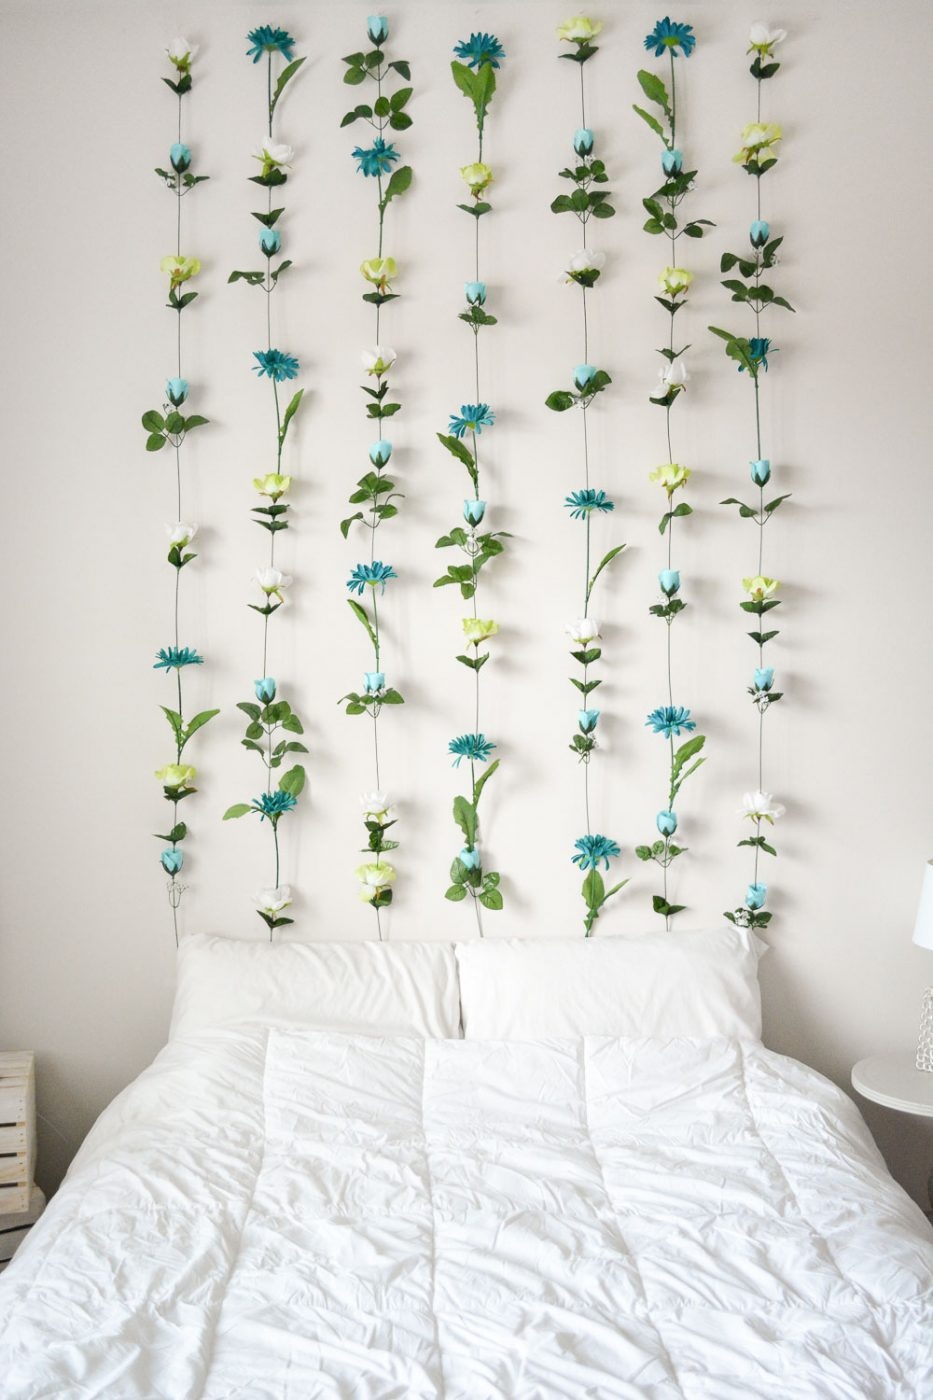 Diy flower wall headboard home decor sweet teal for Pinterest diy decor ideas